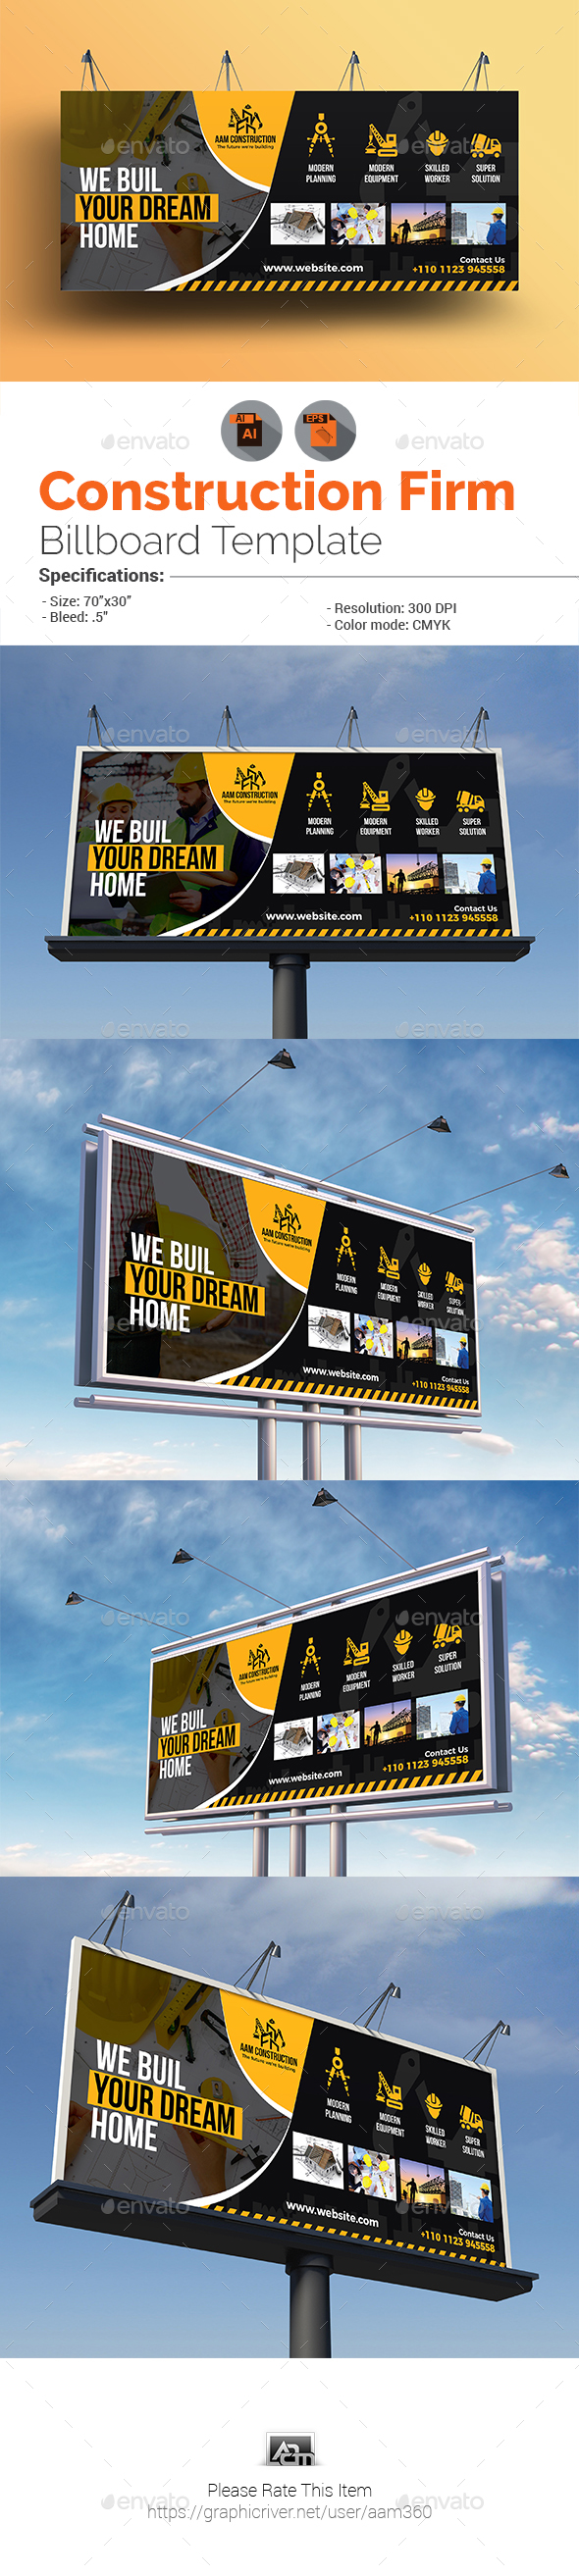 Construction Billboard Template - Signage Print Templates